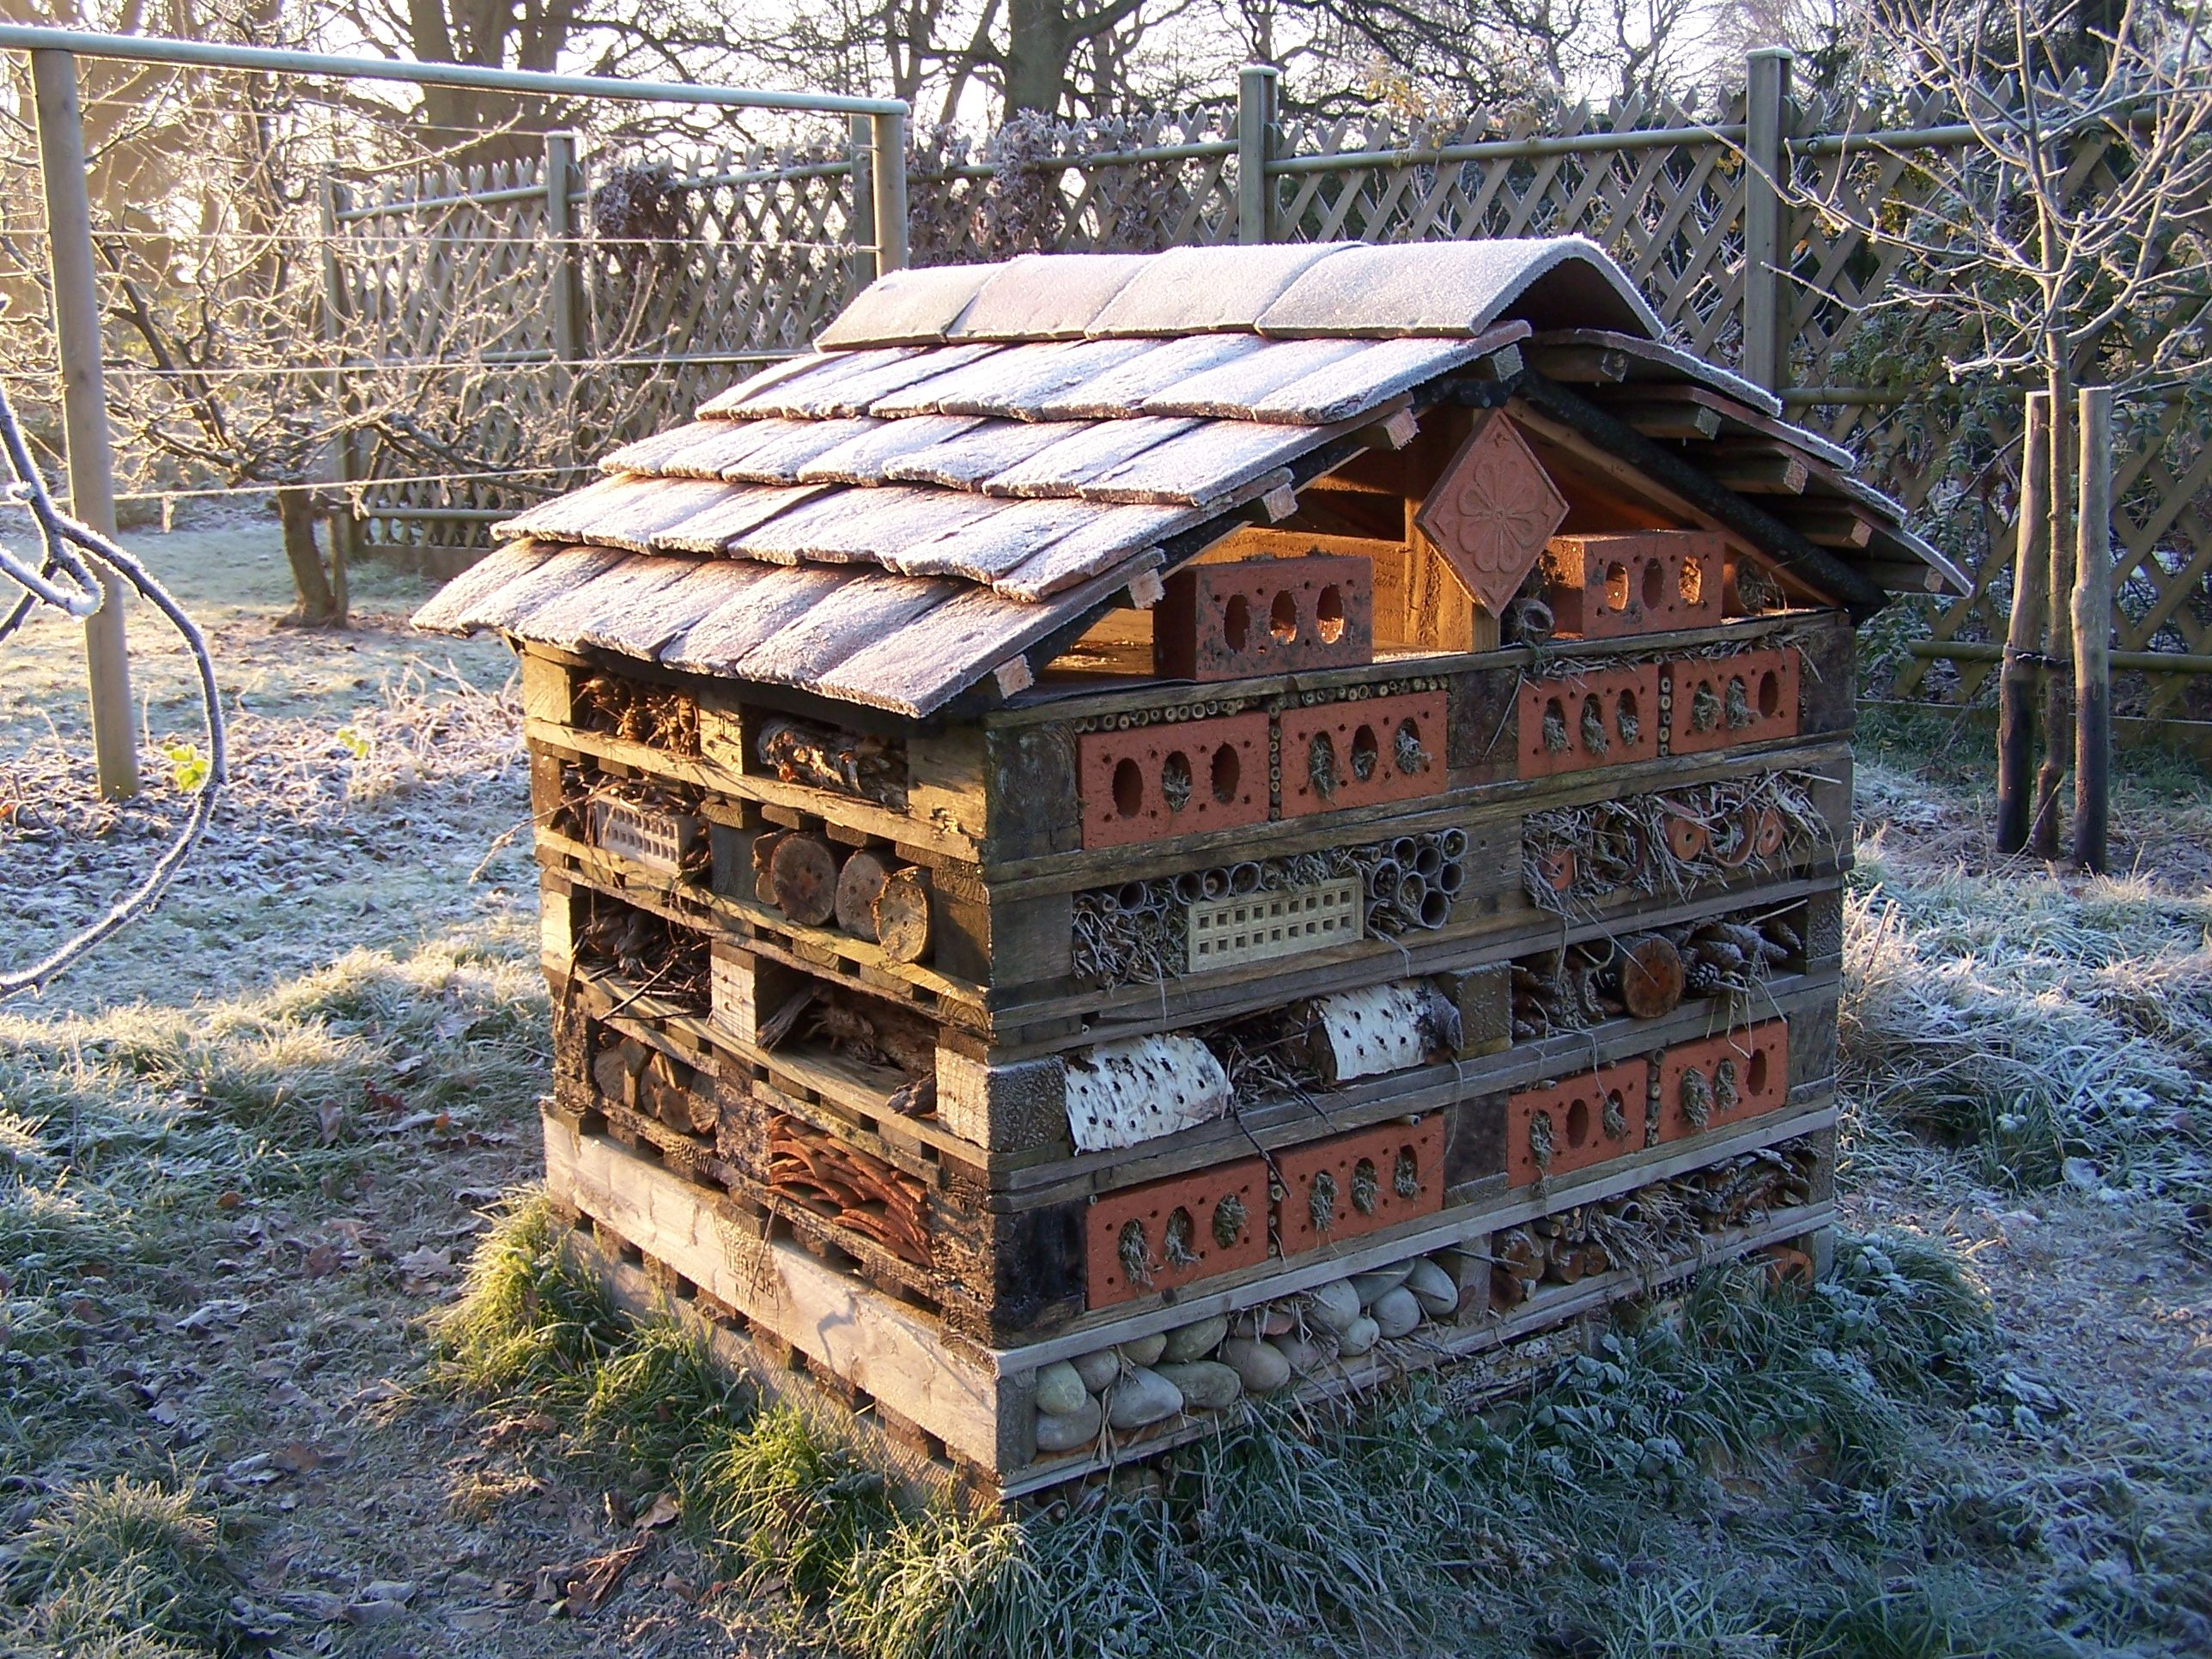 hotel insectes sur palettes en hiver h tels a insectes pinterest bug hotel and insect hotel. Black Bedroom Furniture Sets. Home Design Ideas